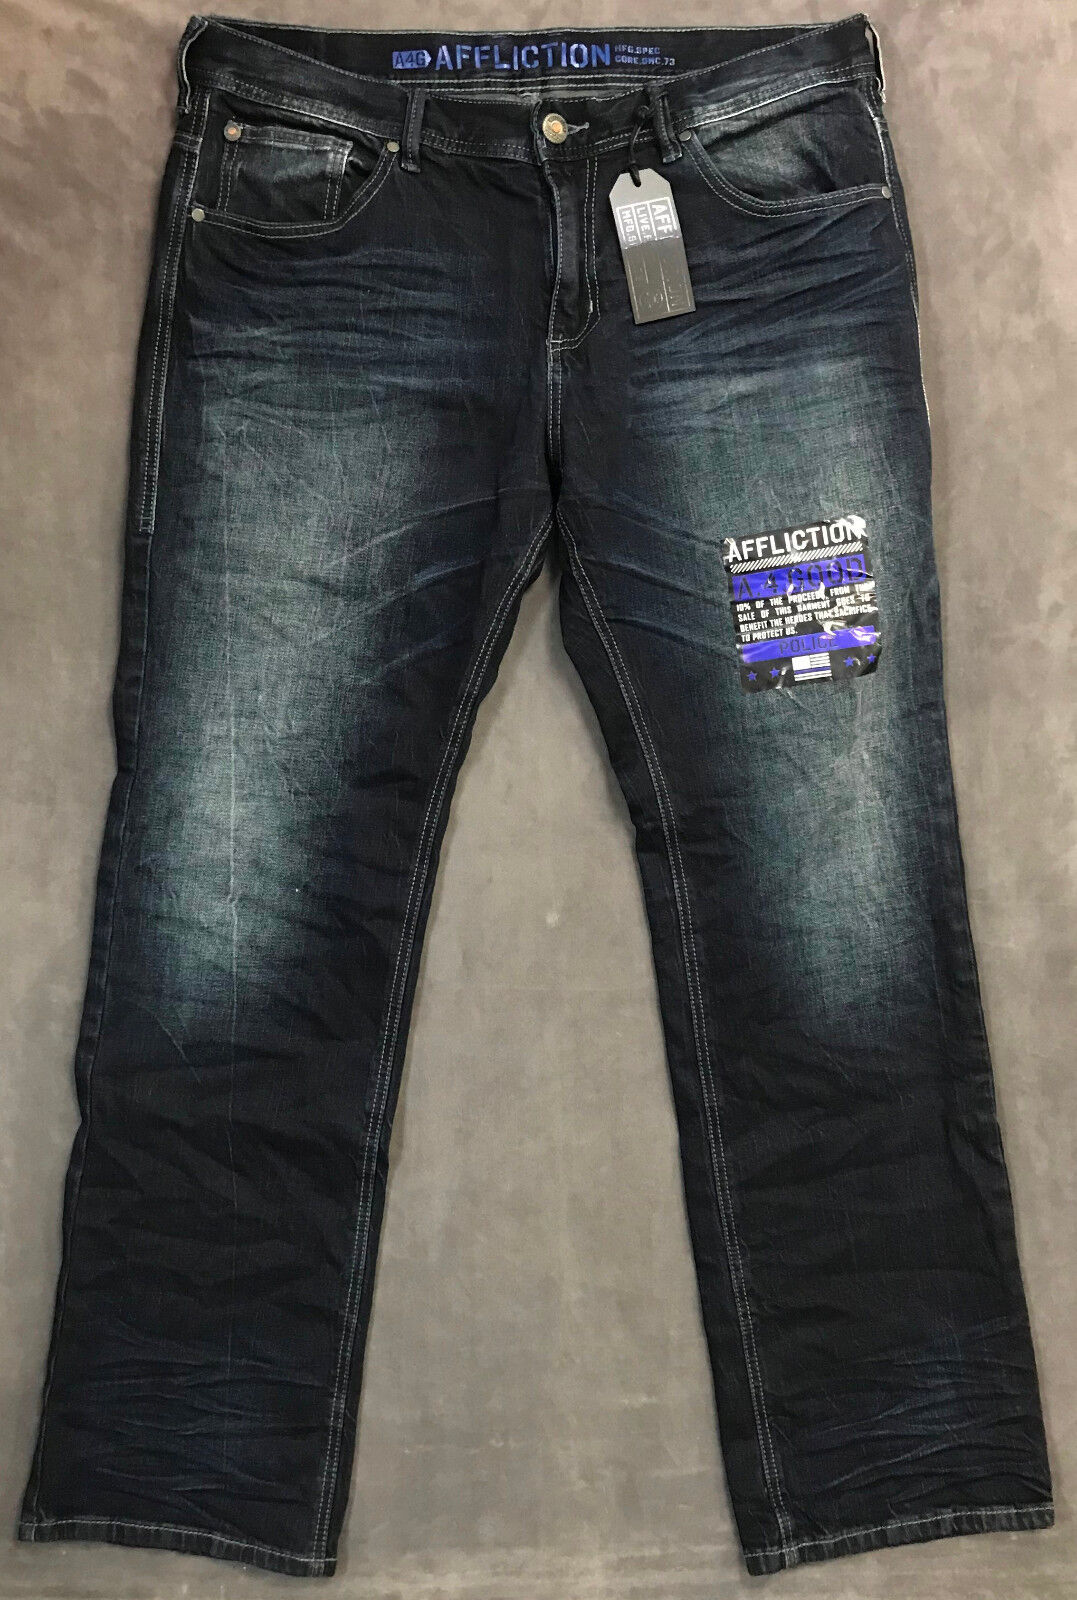 NEW AFFLICTION JEANS MENS GRANT STANDARD STRAIGHT IN TULSA SZ 38